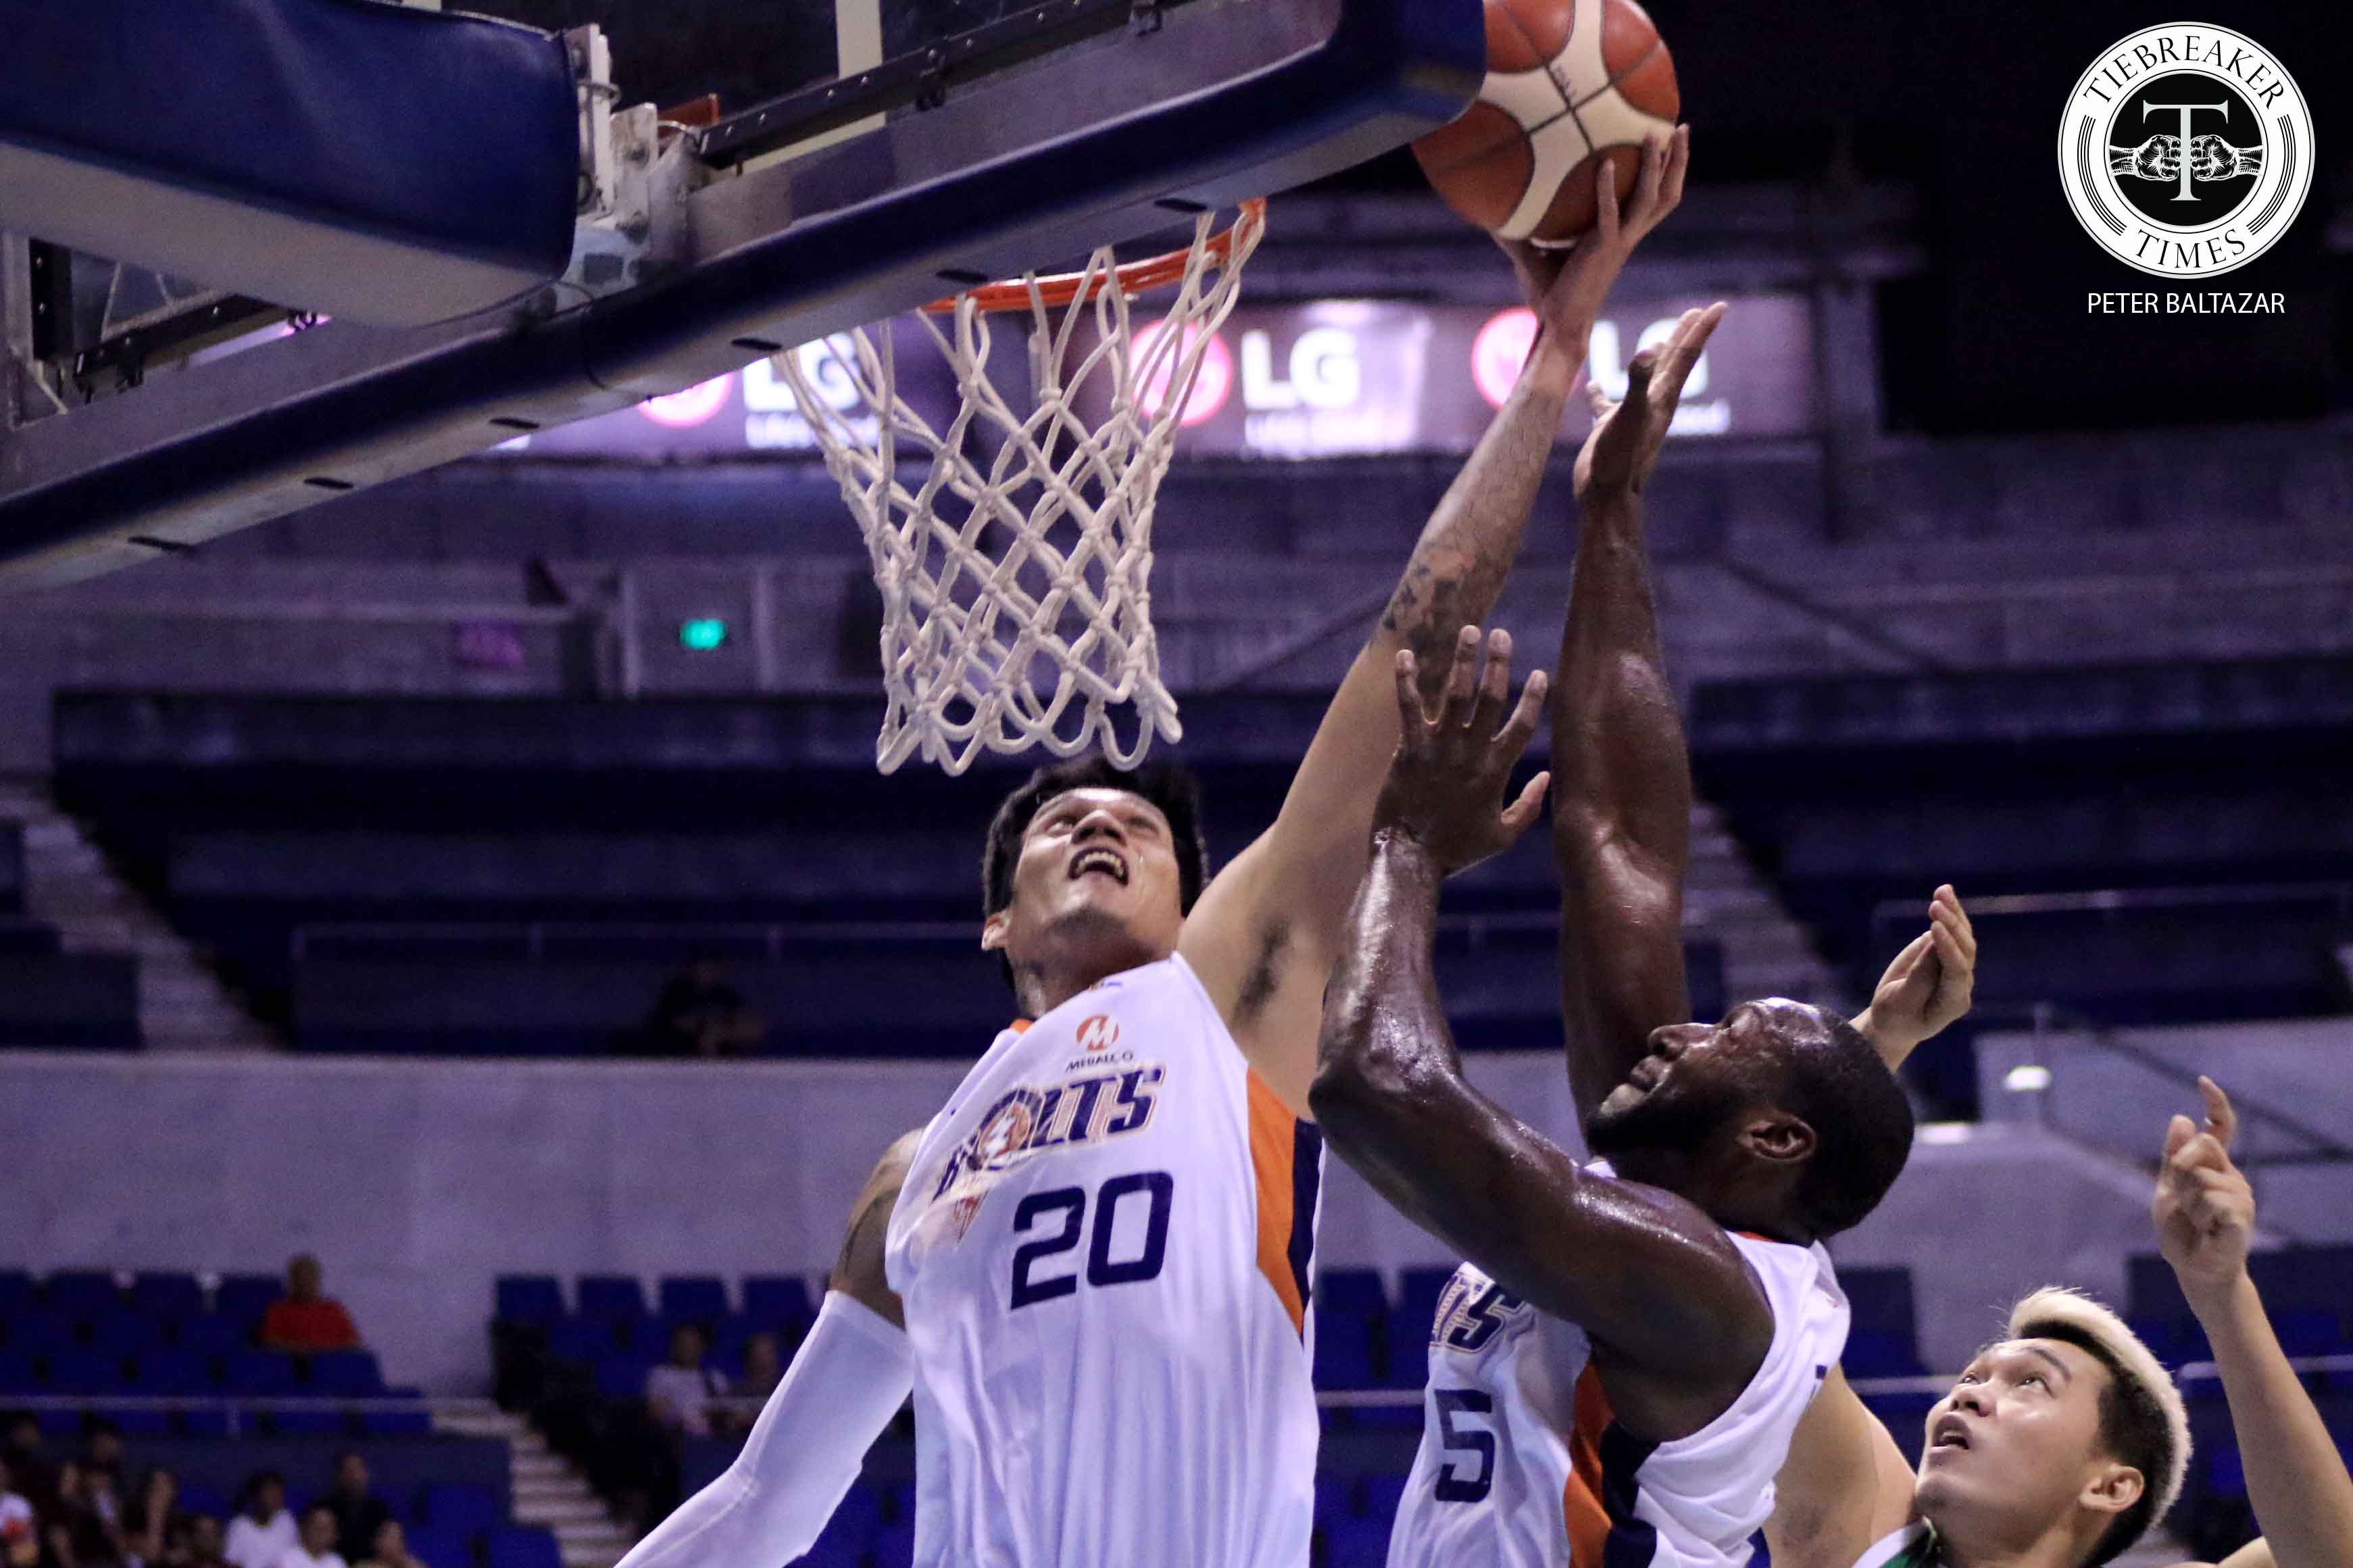 Tiebreaker Times Almazan knows he can grab 30 boards after hauling 24 vs Columbian Basketball News PBA  Raymond Almazan PBA Season 44 Norman Black Meralco Bolts 2019 PBA Governors Cup